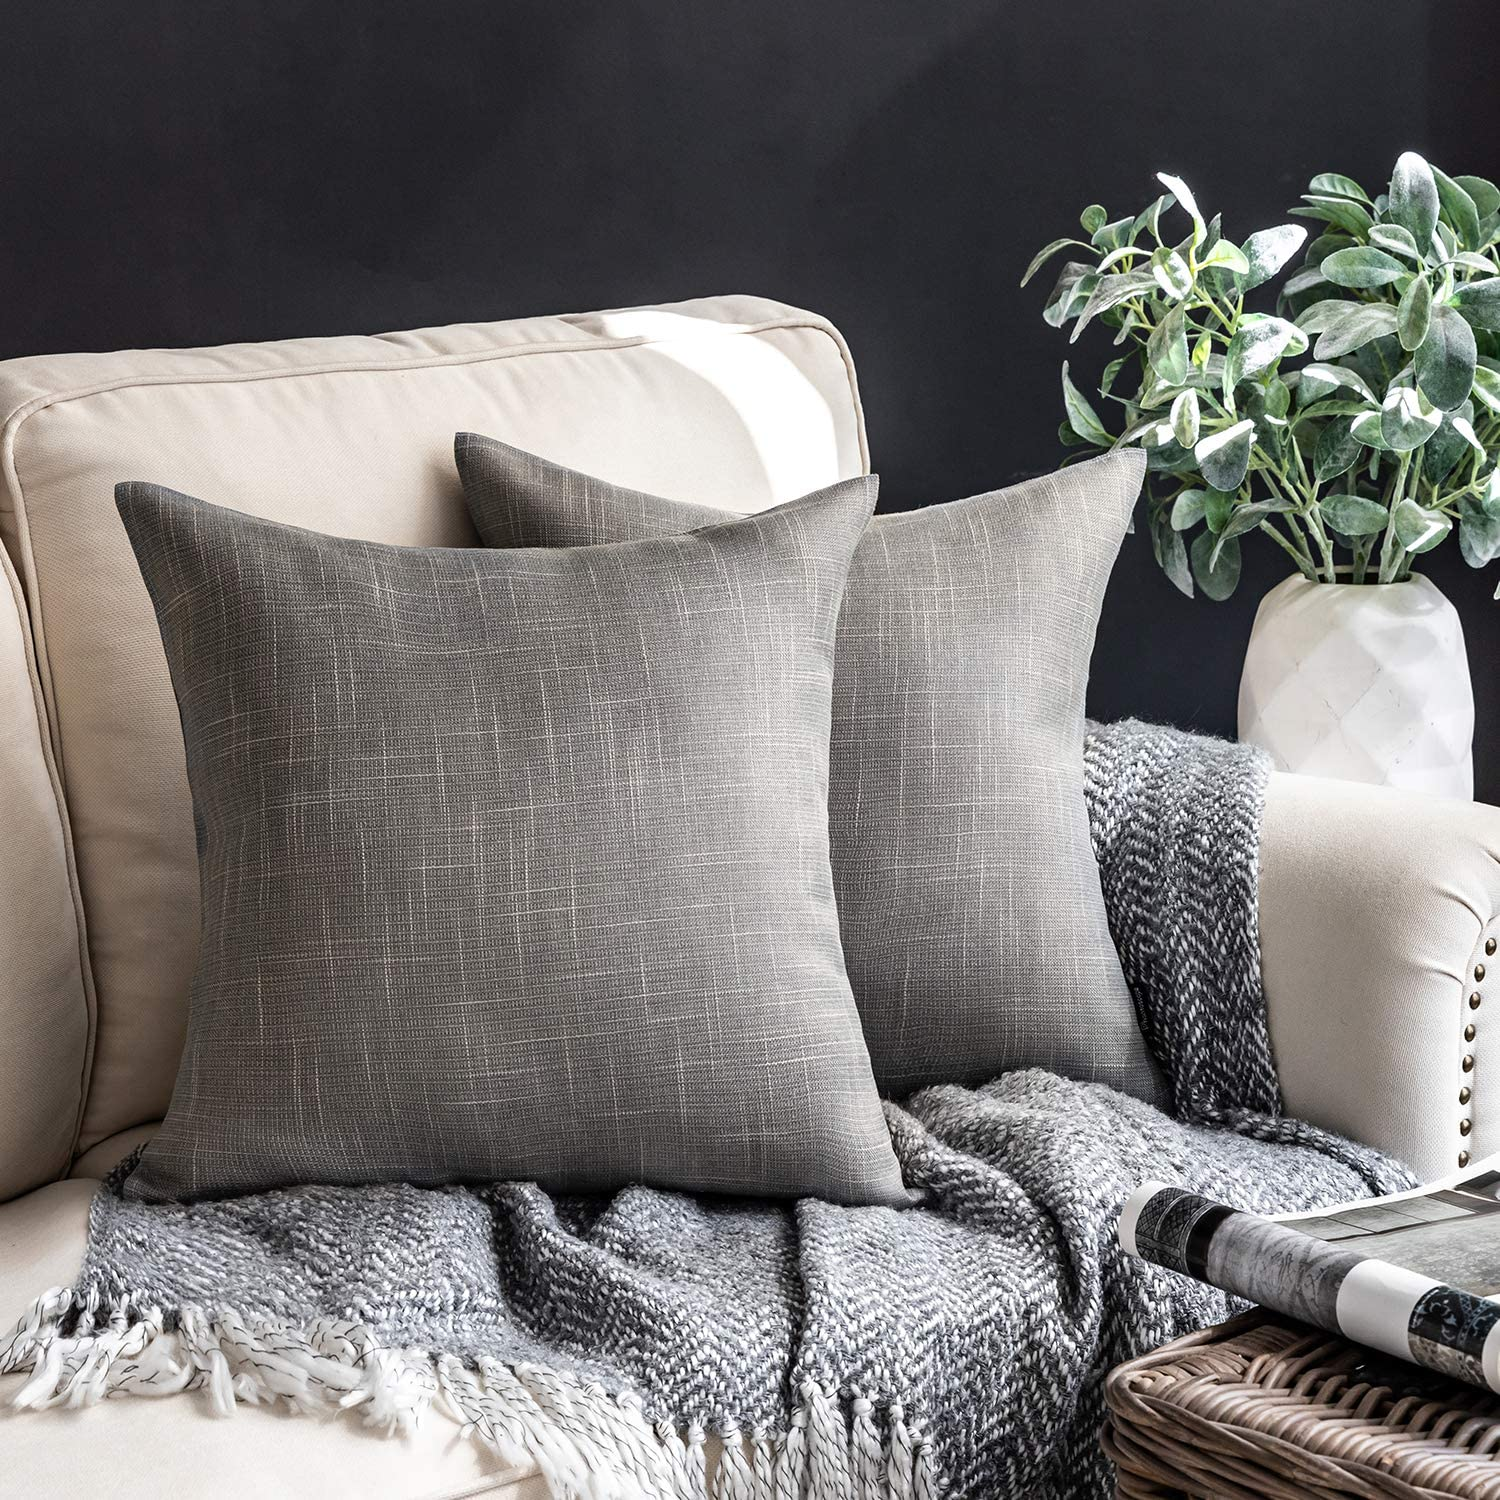 Phantoscope Throw Pillow Cover Soft Textured Lined Burlap Cushion Covers Pillowcase for Home Decor Car Sofa Couch Pack of 2 Dark Grey 22 x 22 inches 55 x 55 cm